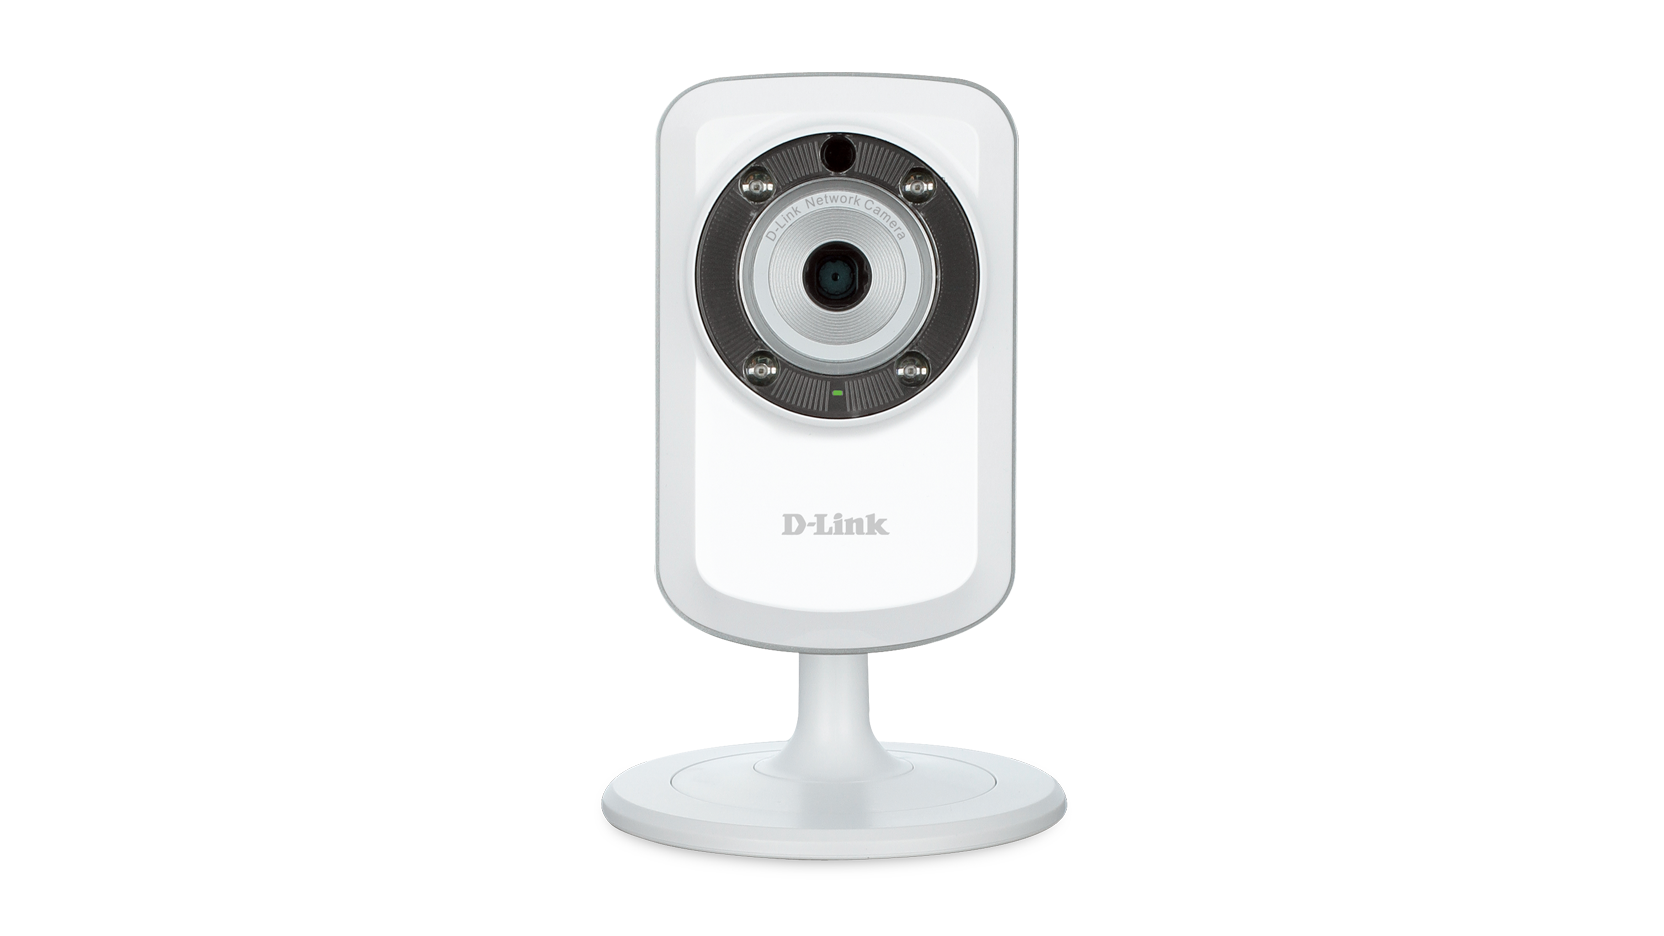 D Link Kamera : full hd 180 degree wi fi camera dcs 2630l d link ~ Watch28wear.com Haus und Dekorationen